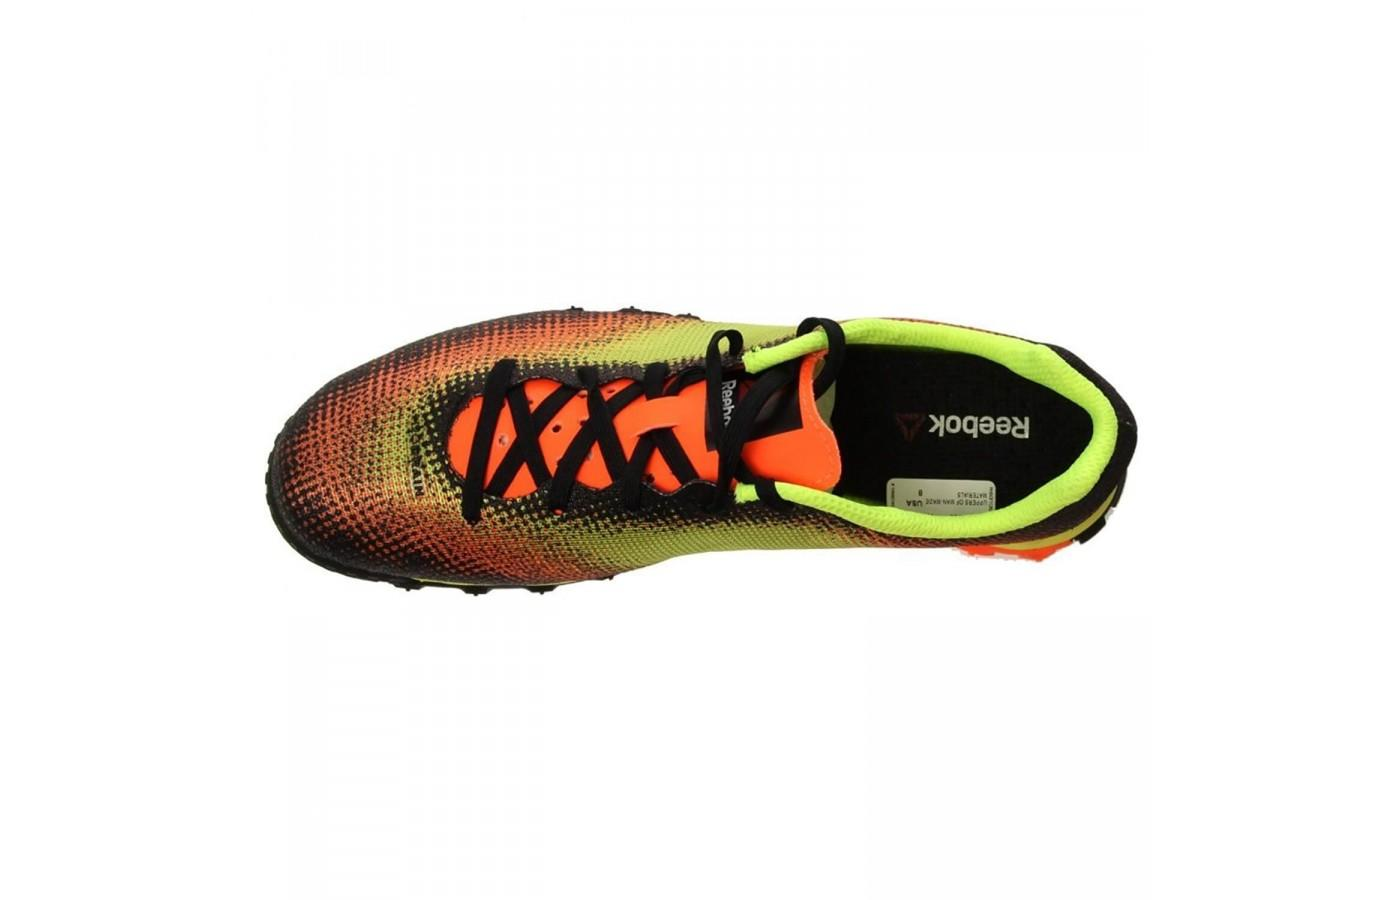 43cb63228918 ... Reebok All Terrain Sprint. The seamless upper hugs the foot and keeps  it secure.